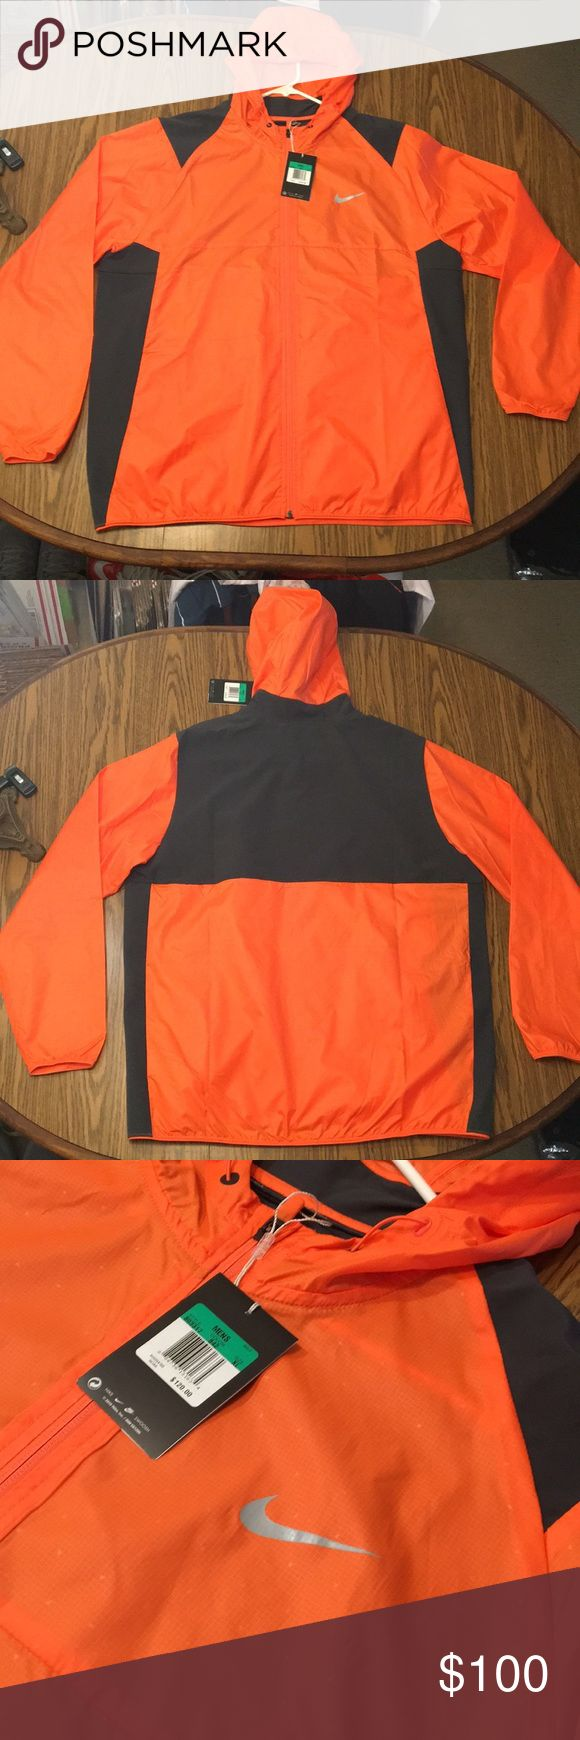 NIKE GOLF MEN XL JACKET NWT NIKE GOLF MEN XL JACKET NWT LIGHT WEIGHT JACKET JACKET THAT IS A FULL ZIP UP WITH A HOOD. JACKET HAS 2 ZIPPER POCKETS ONE AT EACH HIP JACKET HAS A COOL TRIANGLE DESIGN SPECKLED ACROSS THE JACKET  JACKET IS 29 inches from collar down to waist  25 inches from armpit to armpit  Any other questions please feel free to ask Nike Jackets & Coats Raincoats